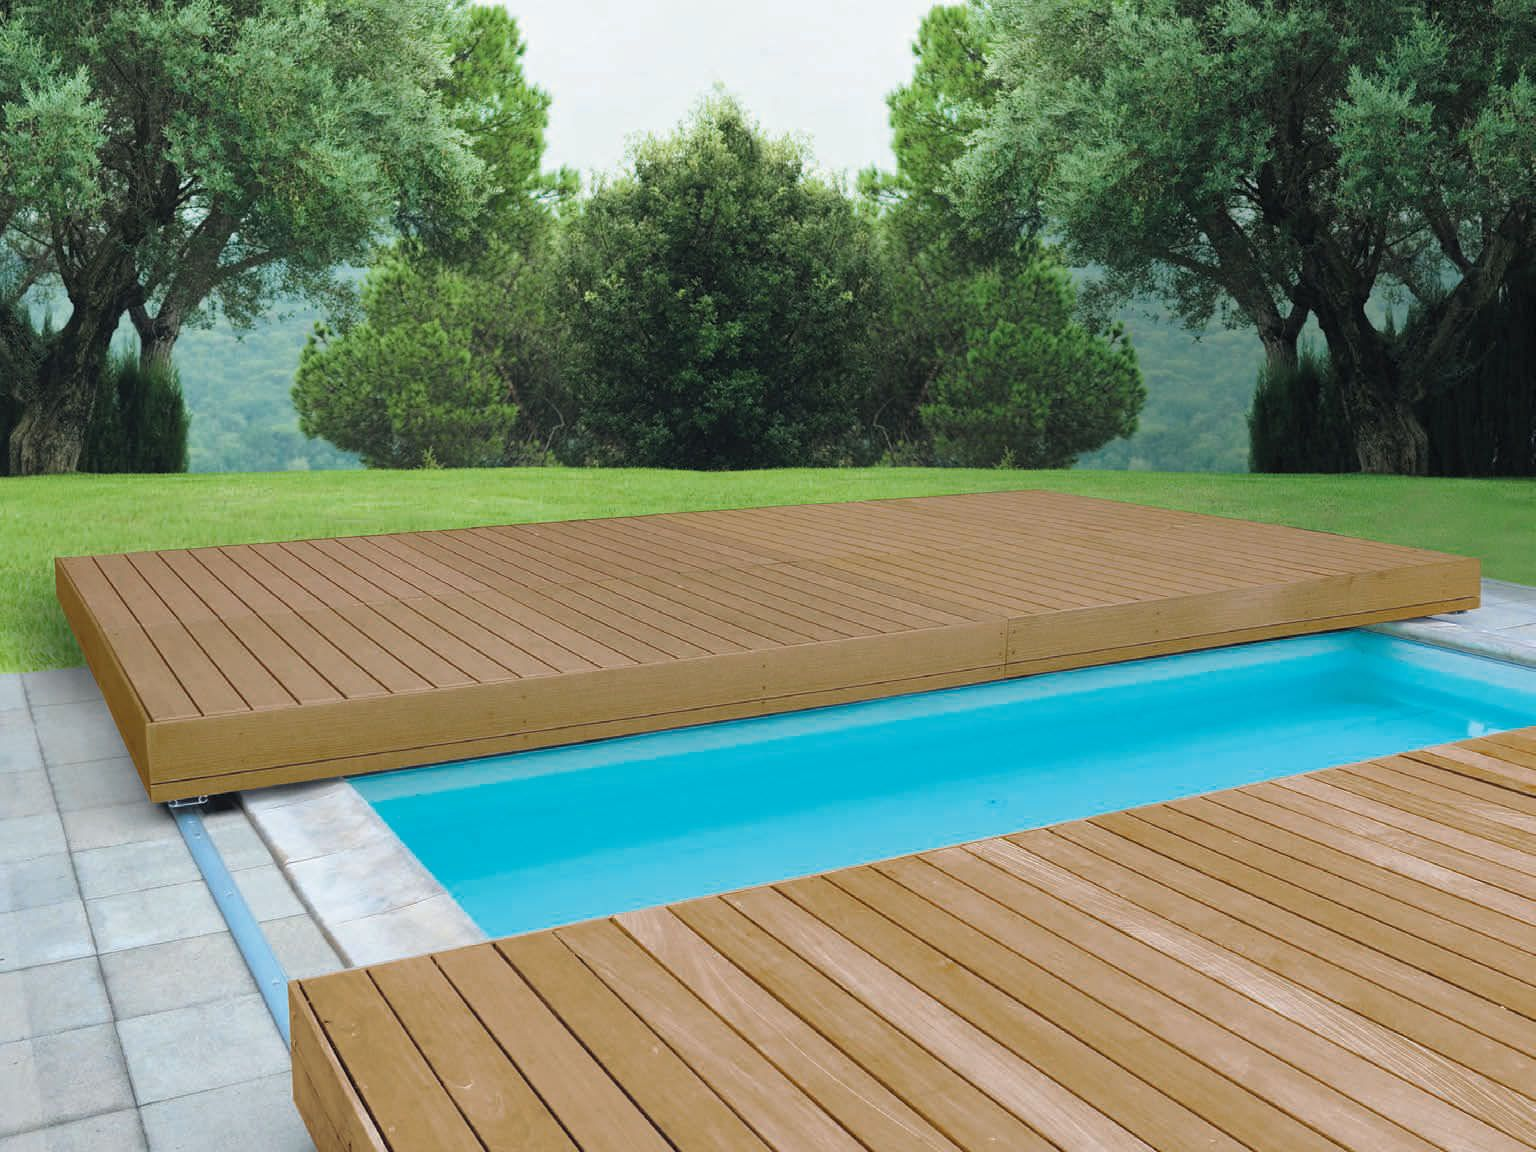 Security sliding deck pool cover Walter Piscine | Infinity Pools ...